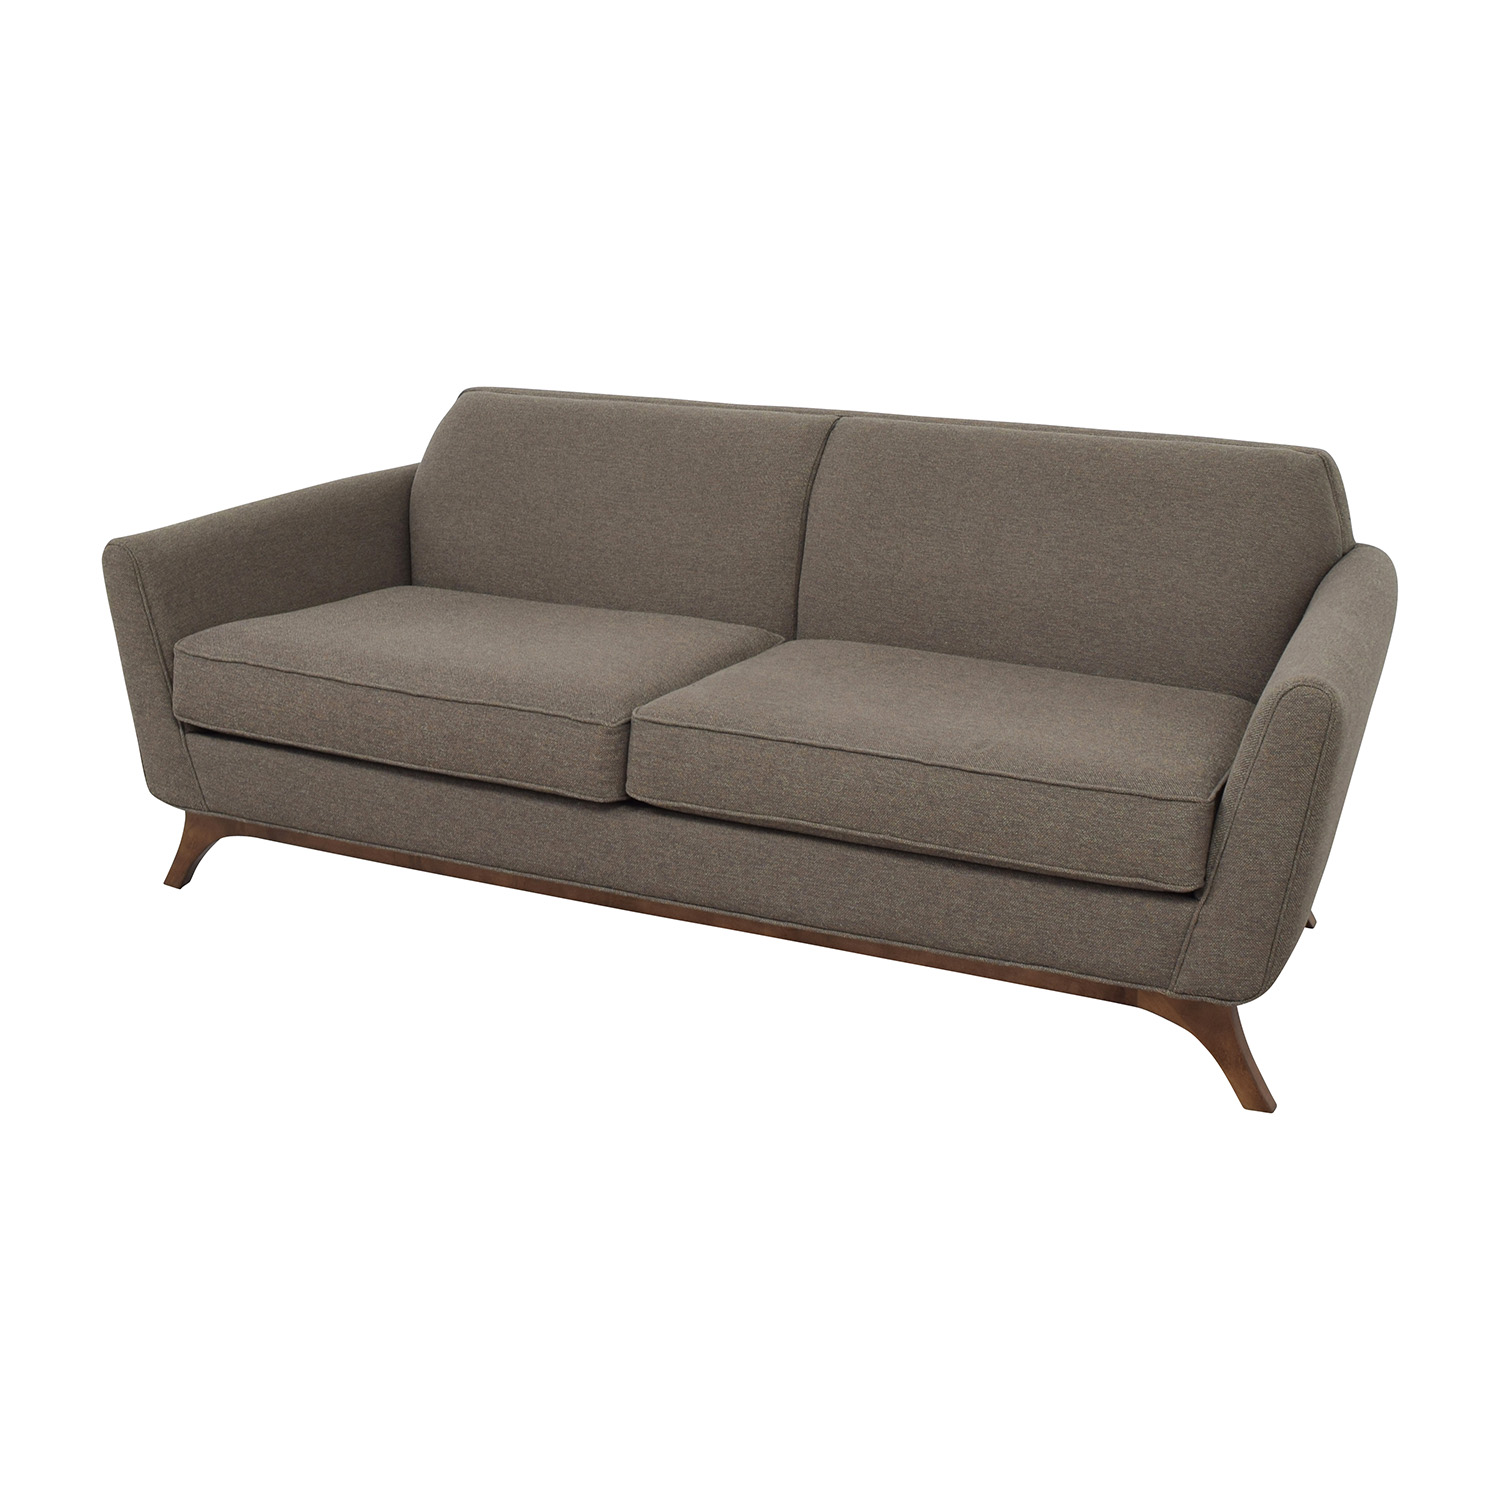 smart sofa designs bed 3 seater leather 27 off furniture 1964 sofas